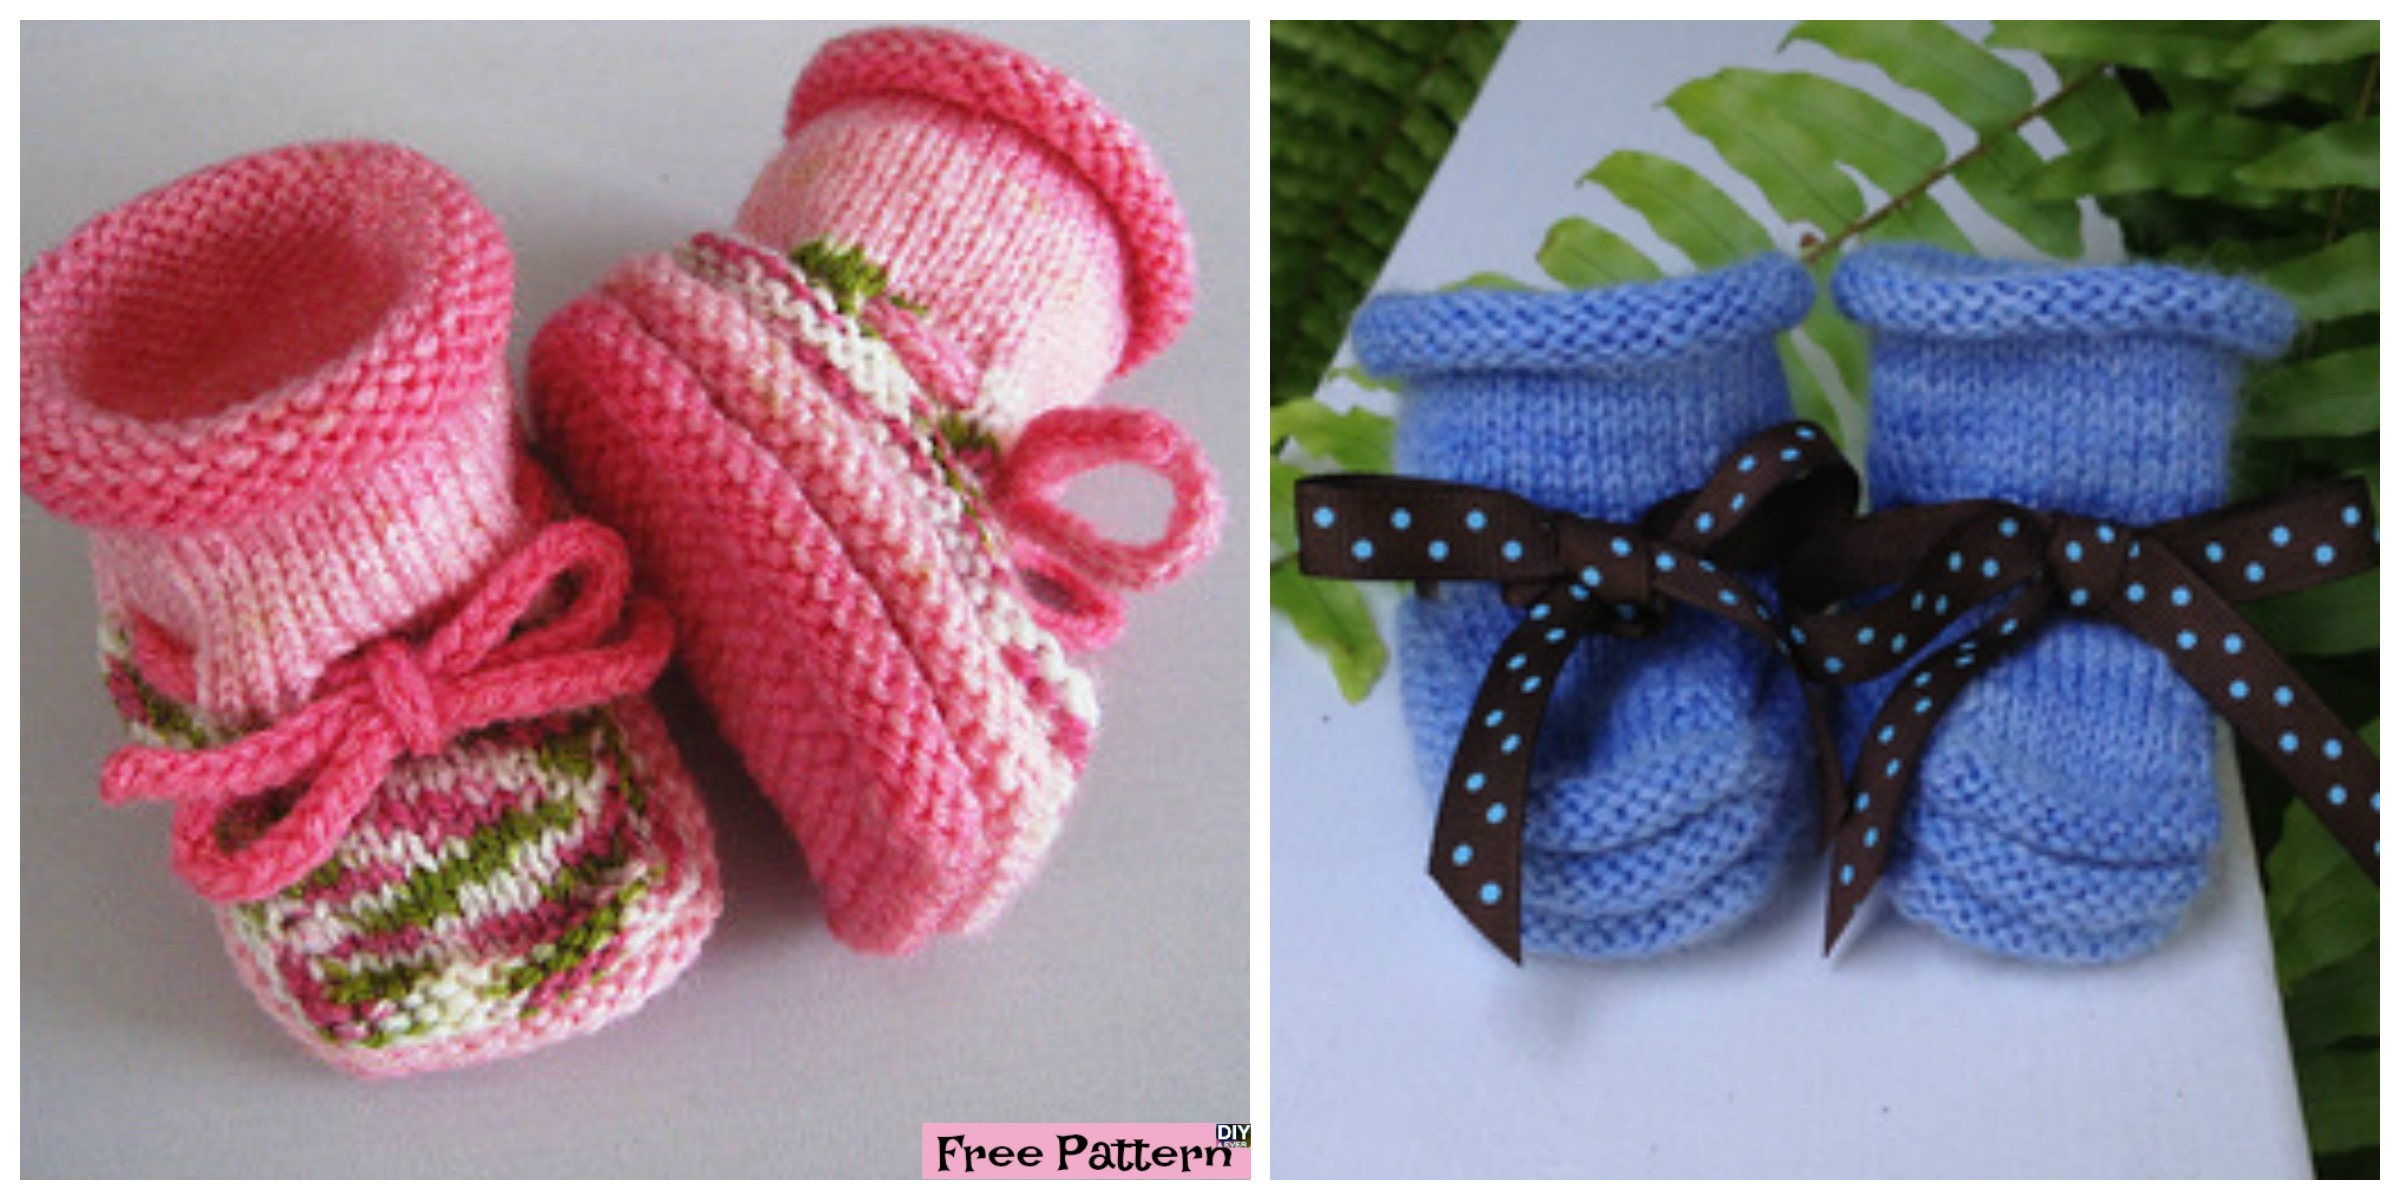 Stay-On Knitted Baby Booties - Free Pattern - DIY 4 EVER